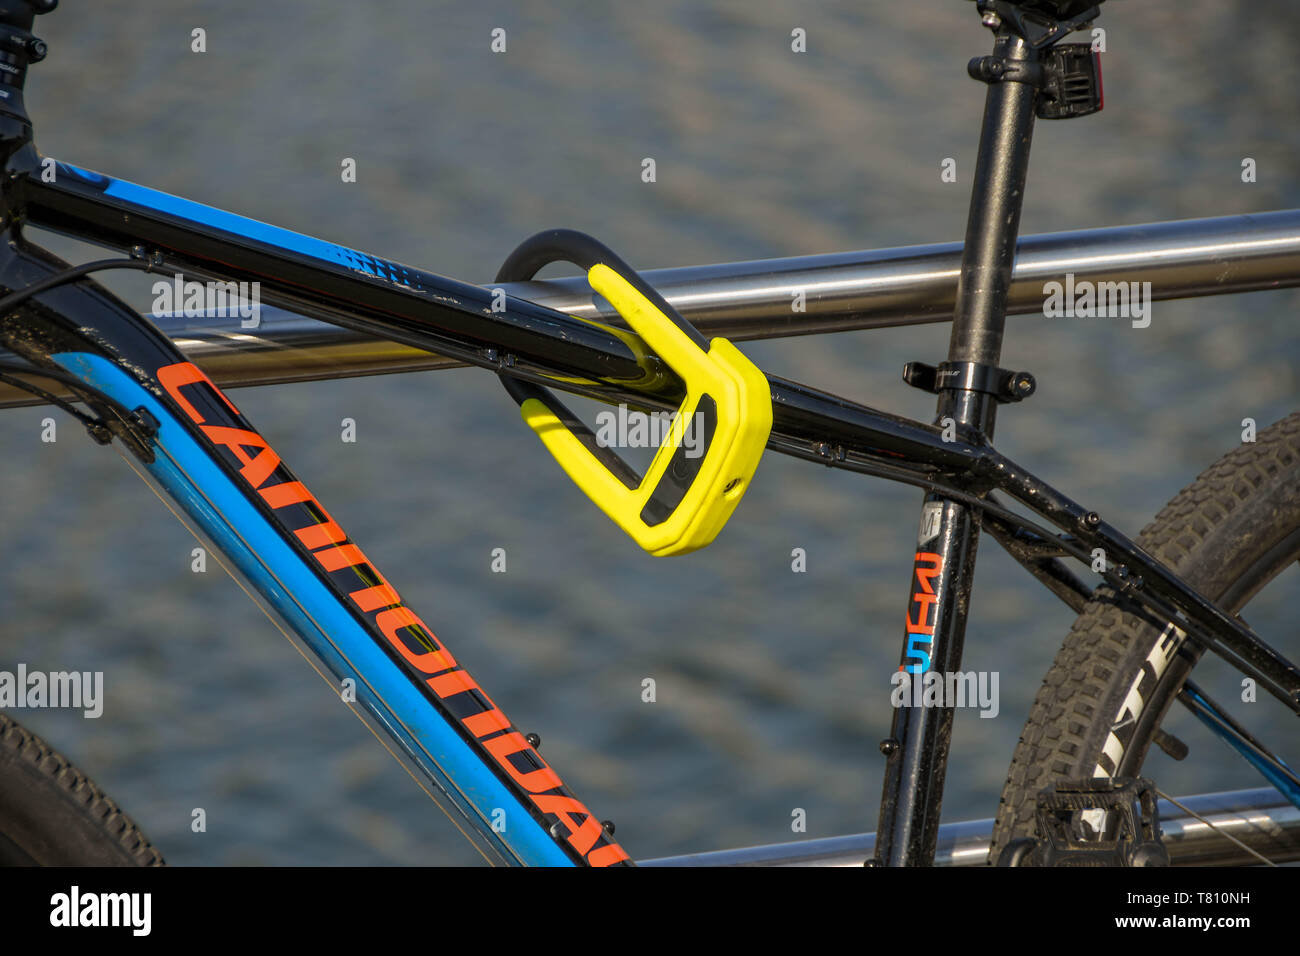 SWANSEA, WALES - JULY 2018: Close up of a lock securing the frame of a bike to metal railings to prevent theft. - Stock Image